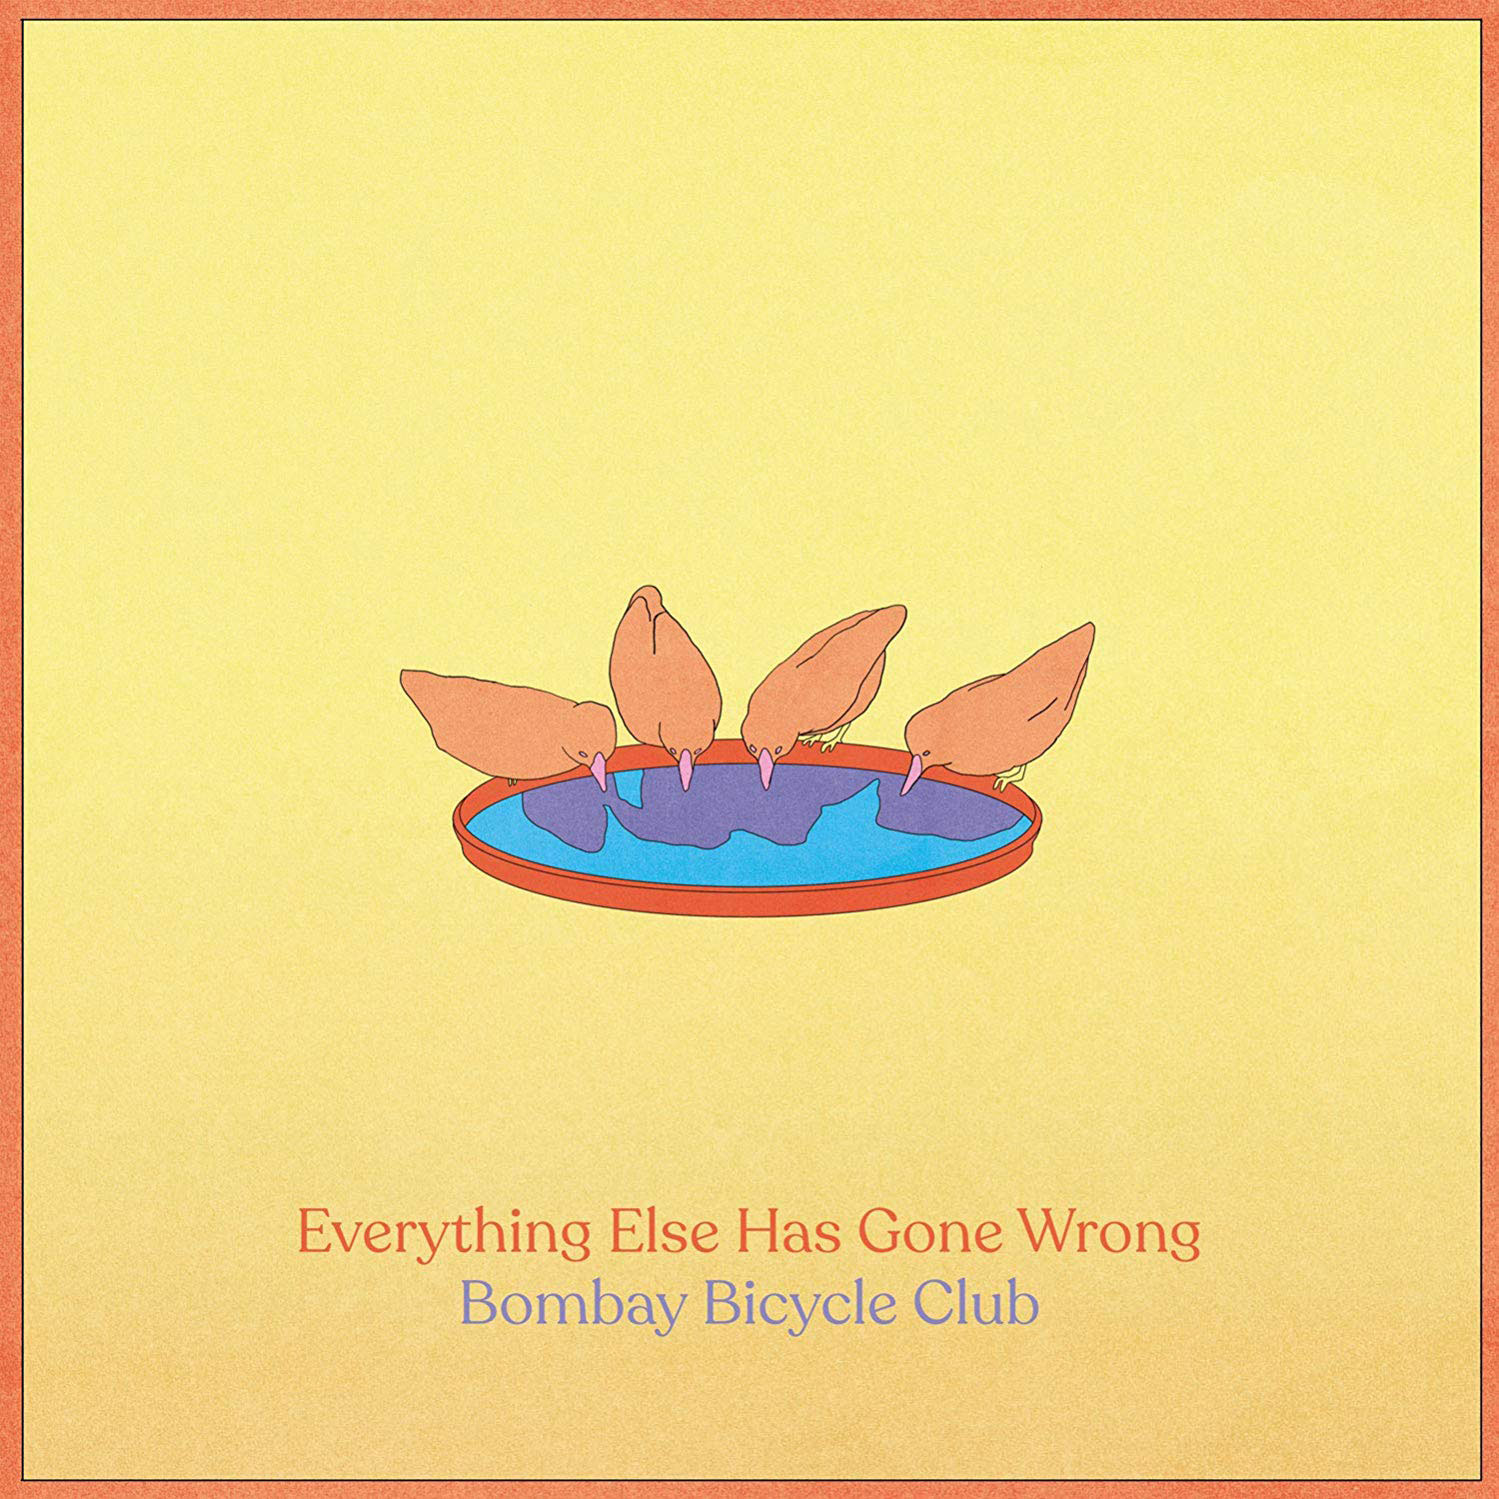 İNCELEME: BOMBAY BICYCLE CLUB – EVERYTHING ELSE HAS GONE WRONG